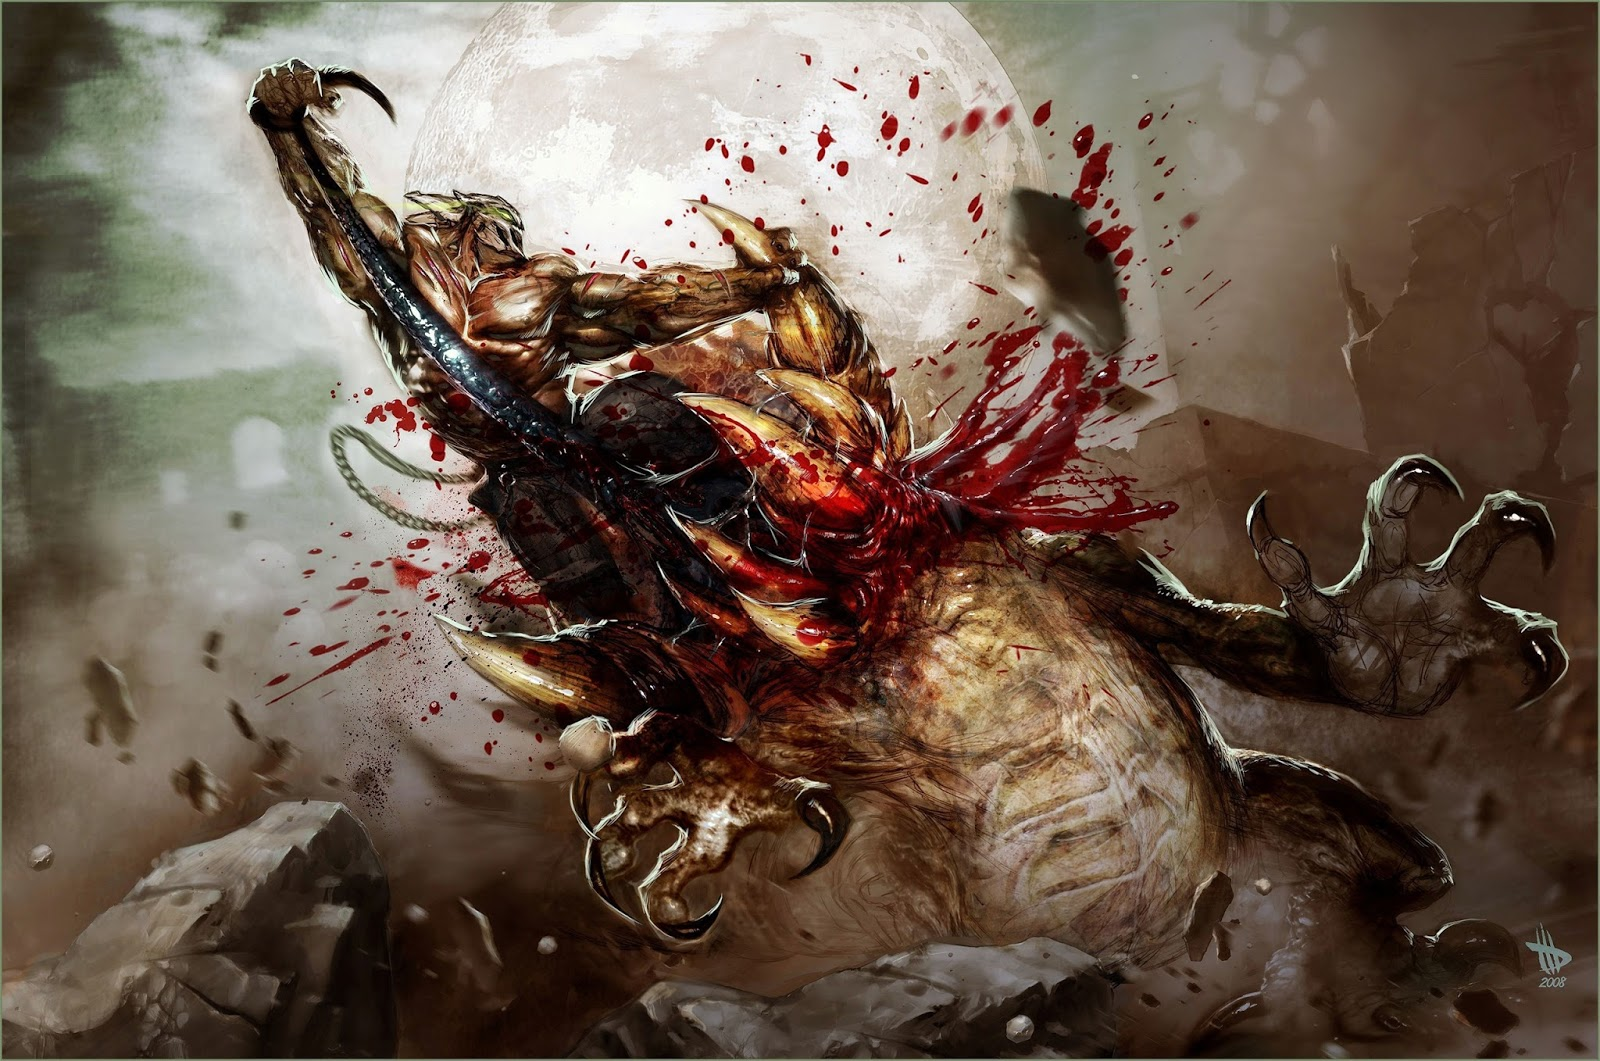 Epic Fight Monster Warrior Blood Full Moon Fantasy Hd Wallpaper Desktop Pc A76